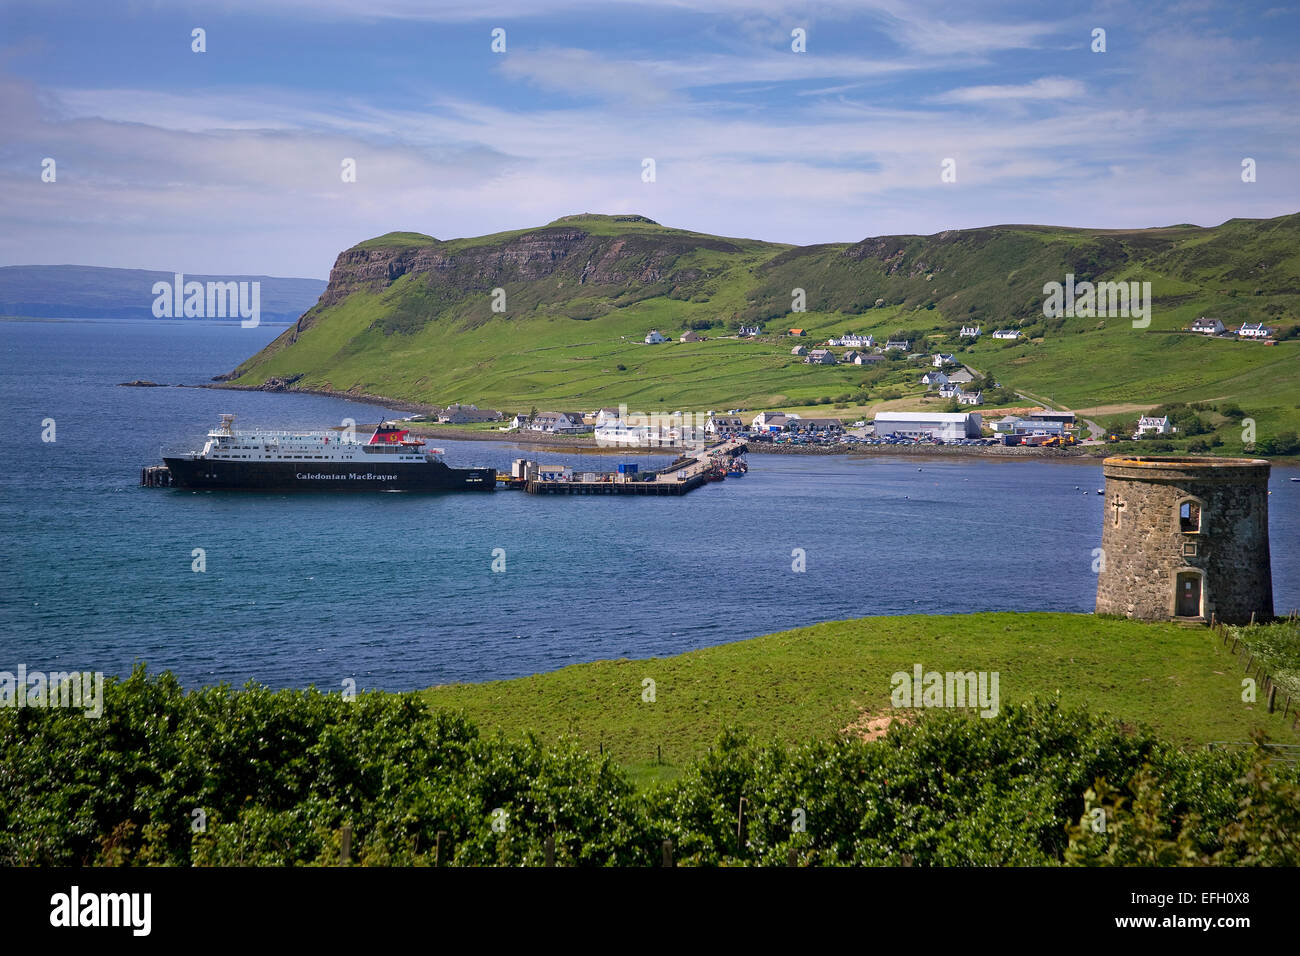 CalMac vessel MV Hebrides at Uig, Isle of Skye - Stock Image